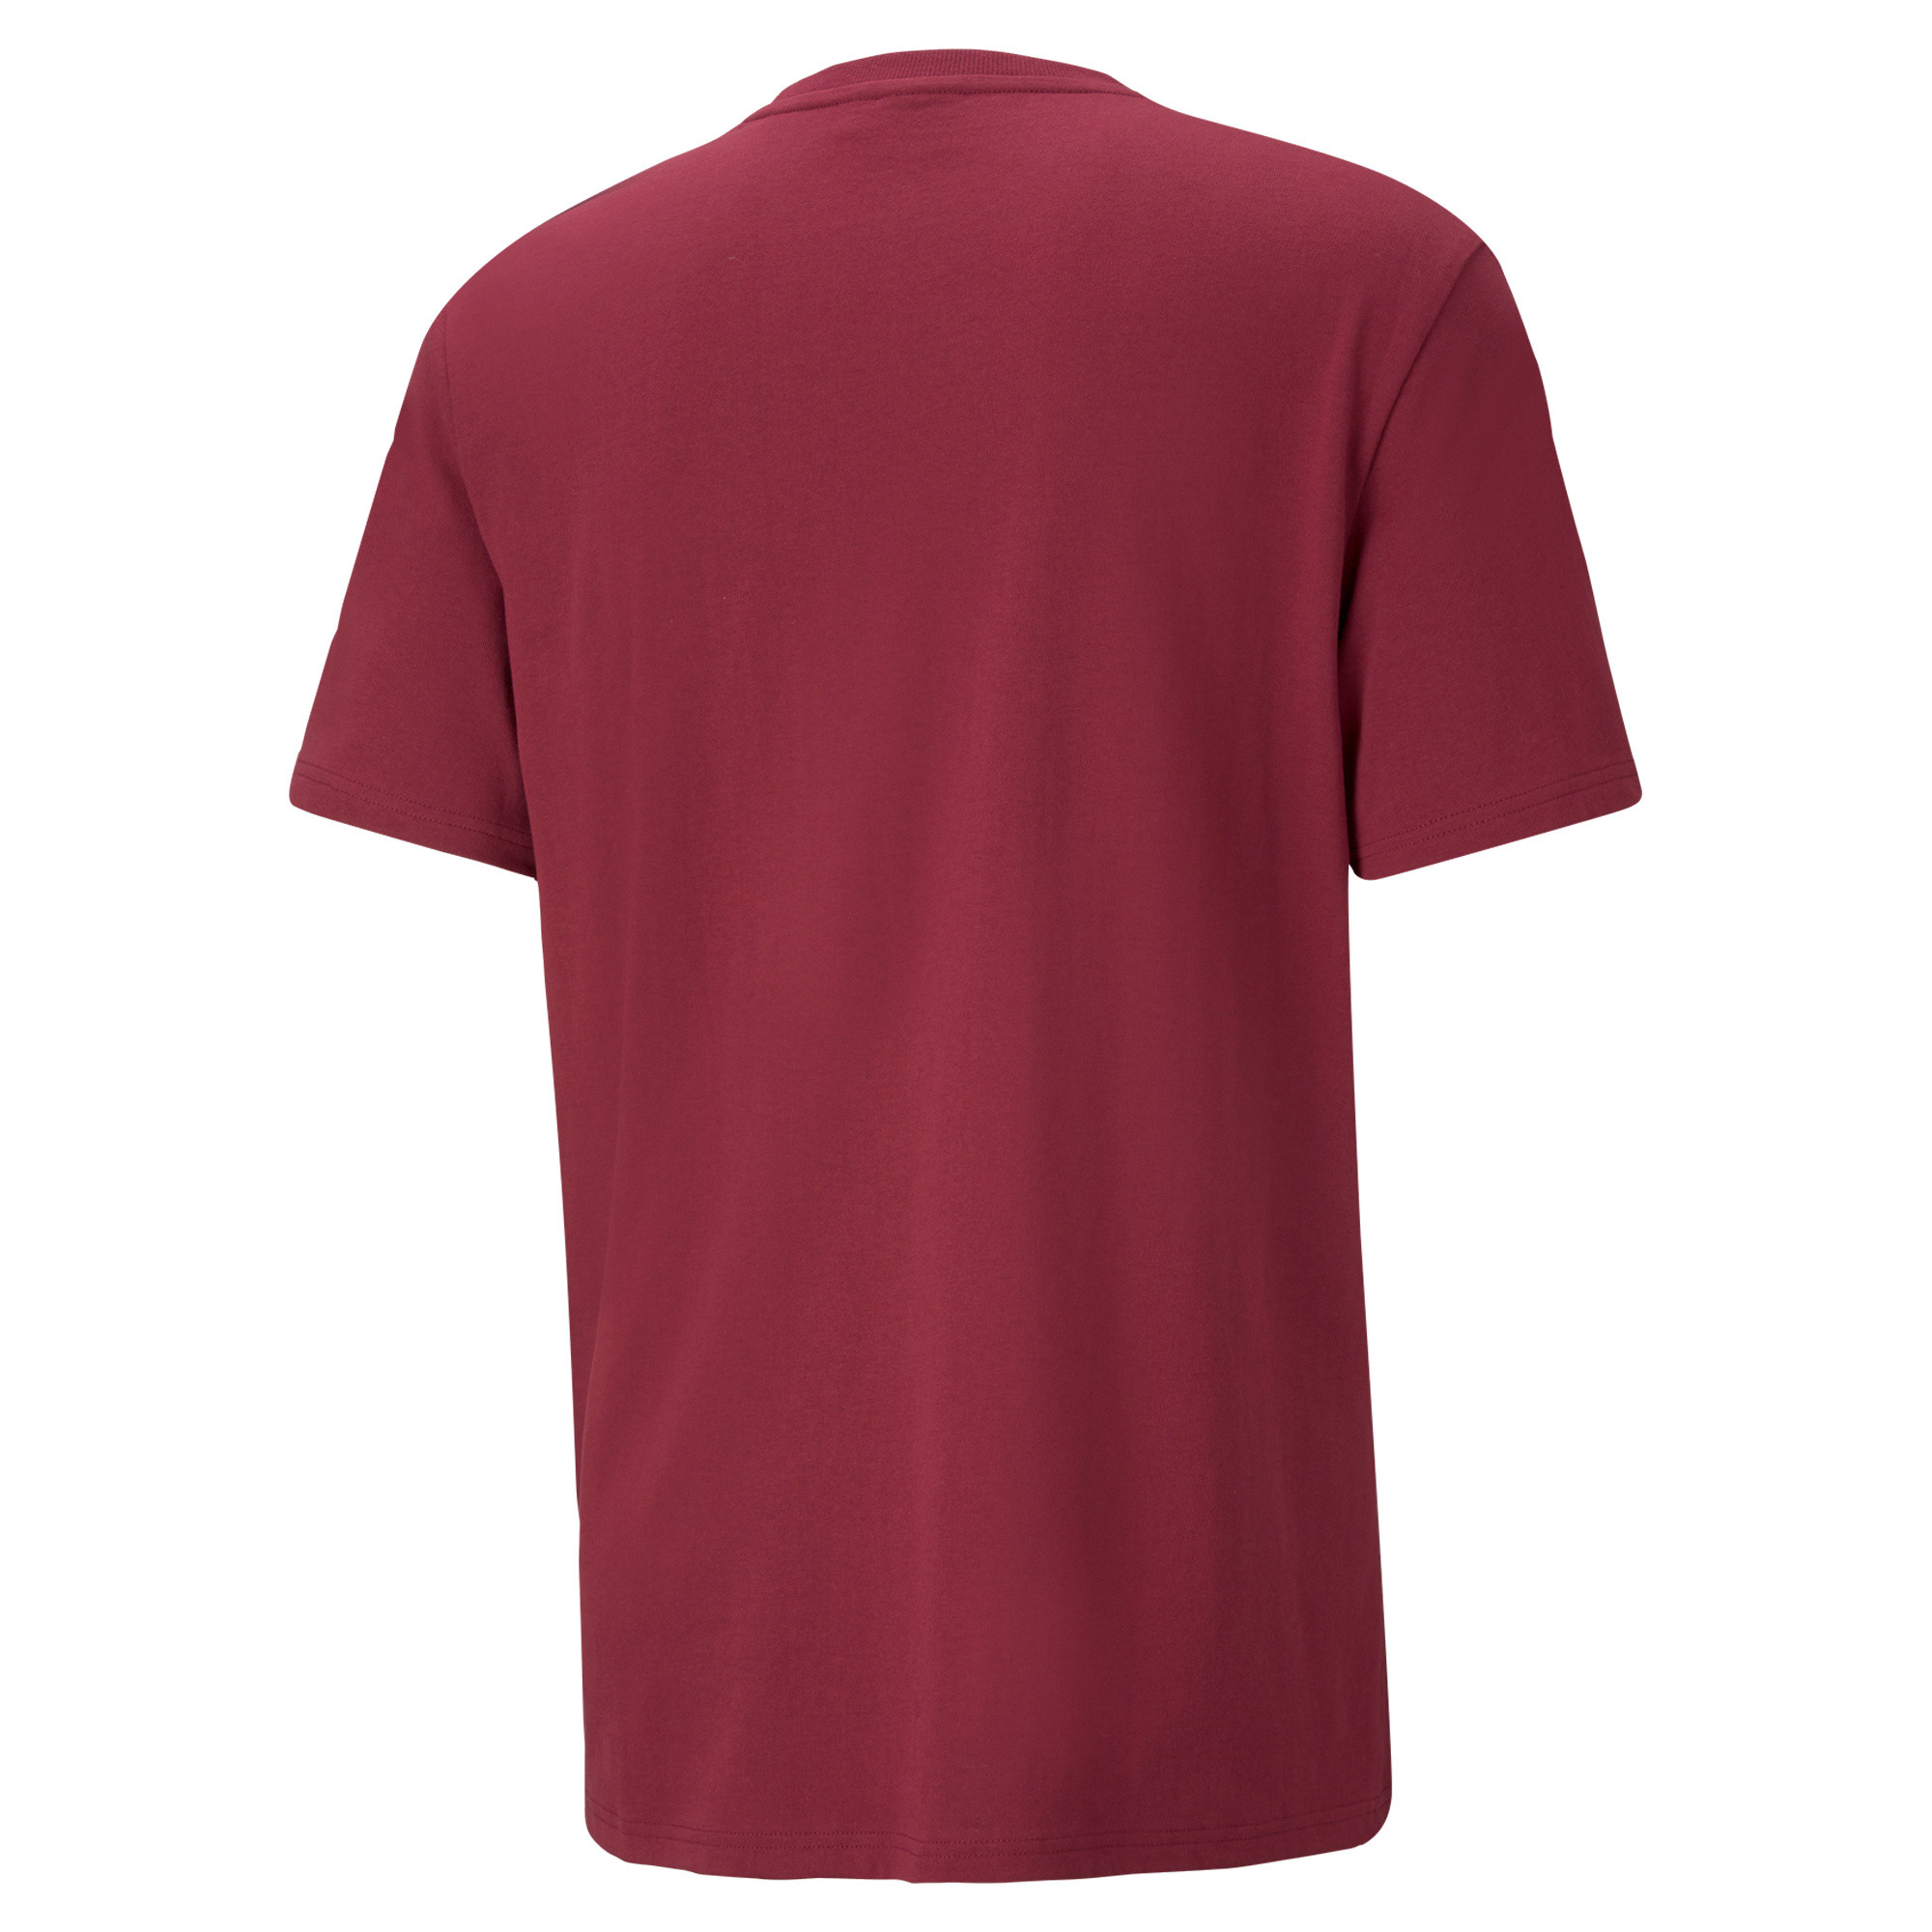 T-shirt uomo, Rosso scuro, large image number 1